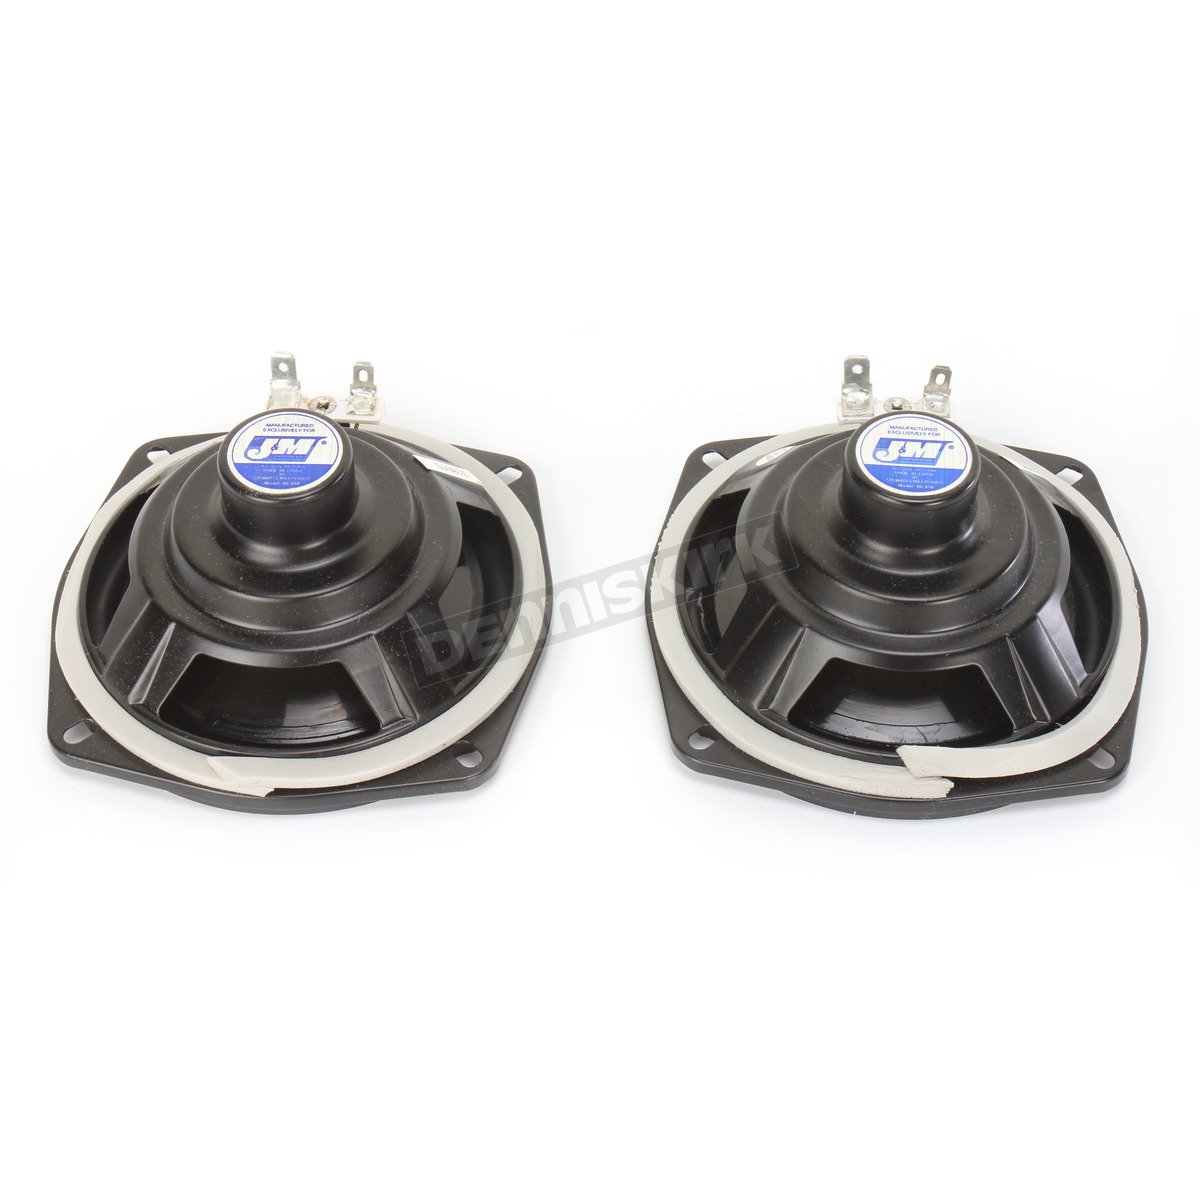 Poineer TS-A652C 6-1//2 2 Way Component Speaker System